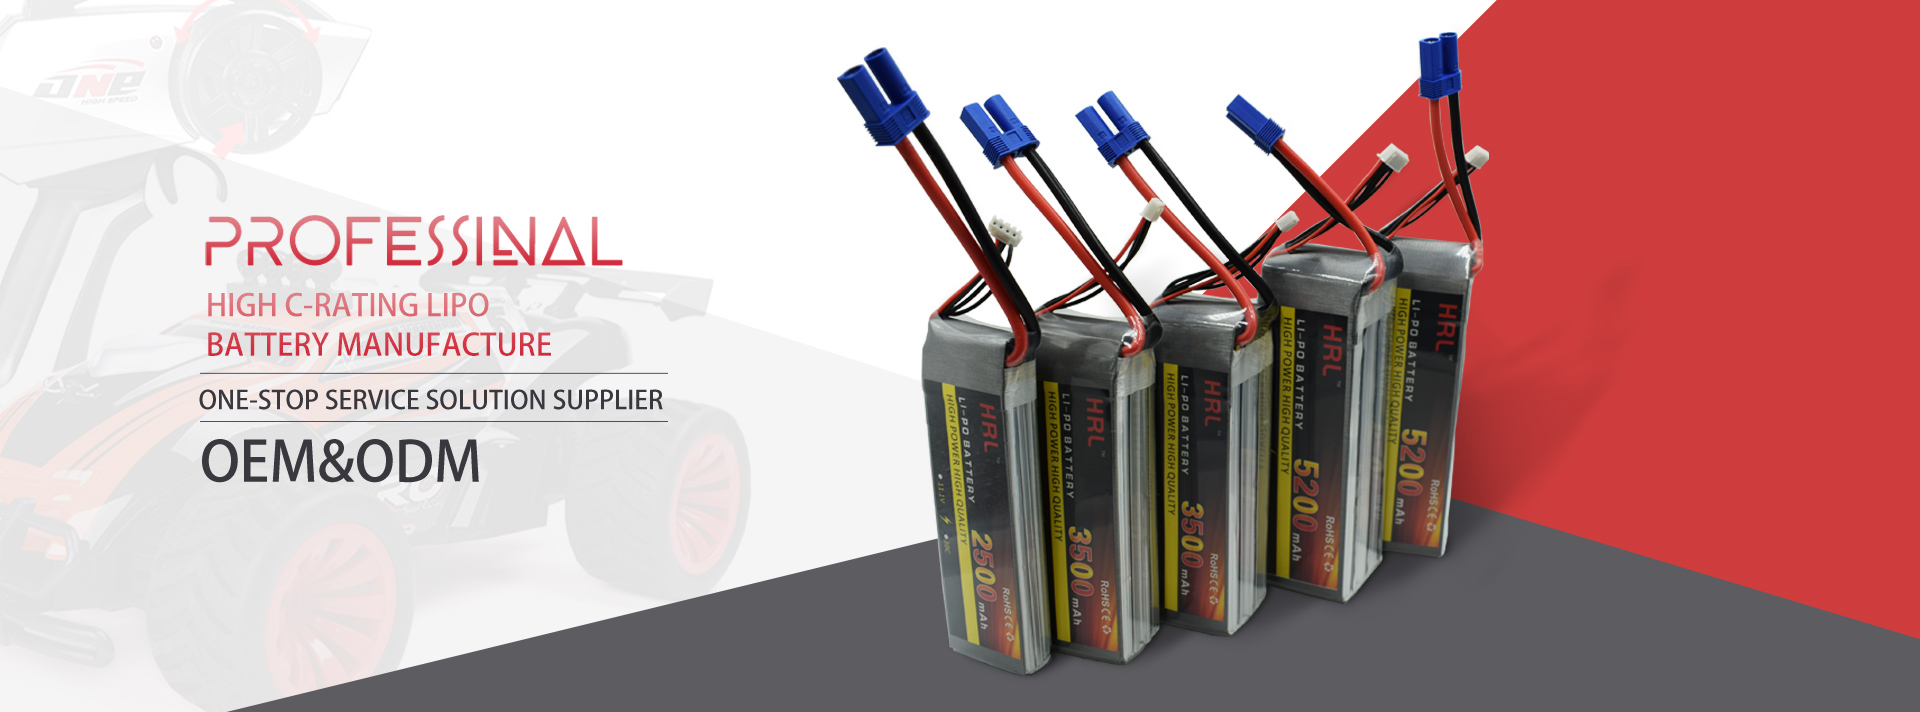 High Discharge C rating Lithium Polymer Battery 10C 15C 20C 25C 30C 40C 60C 80C